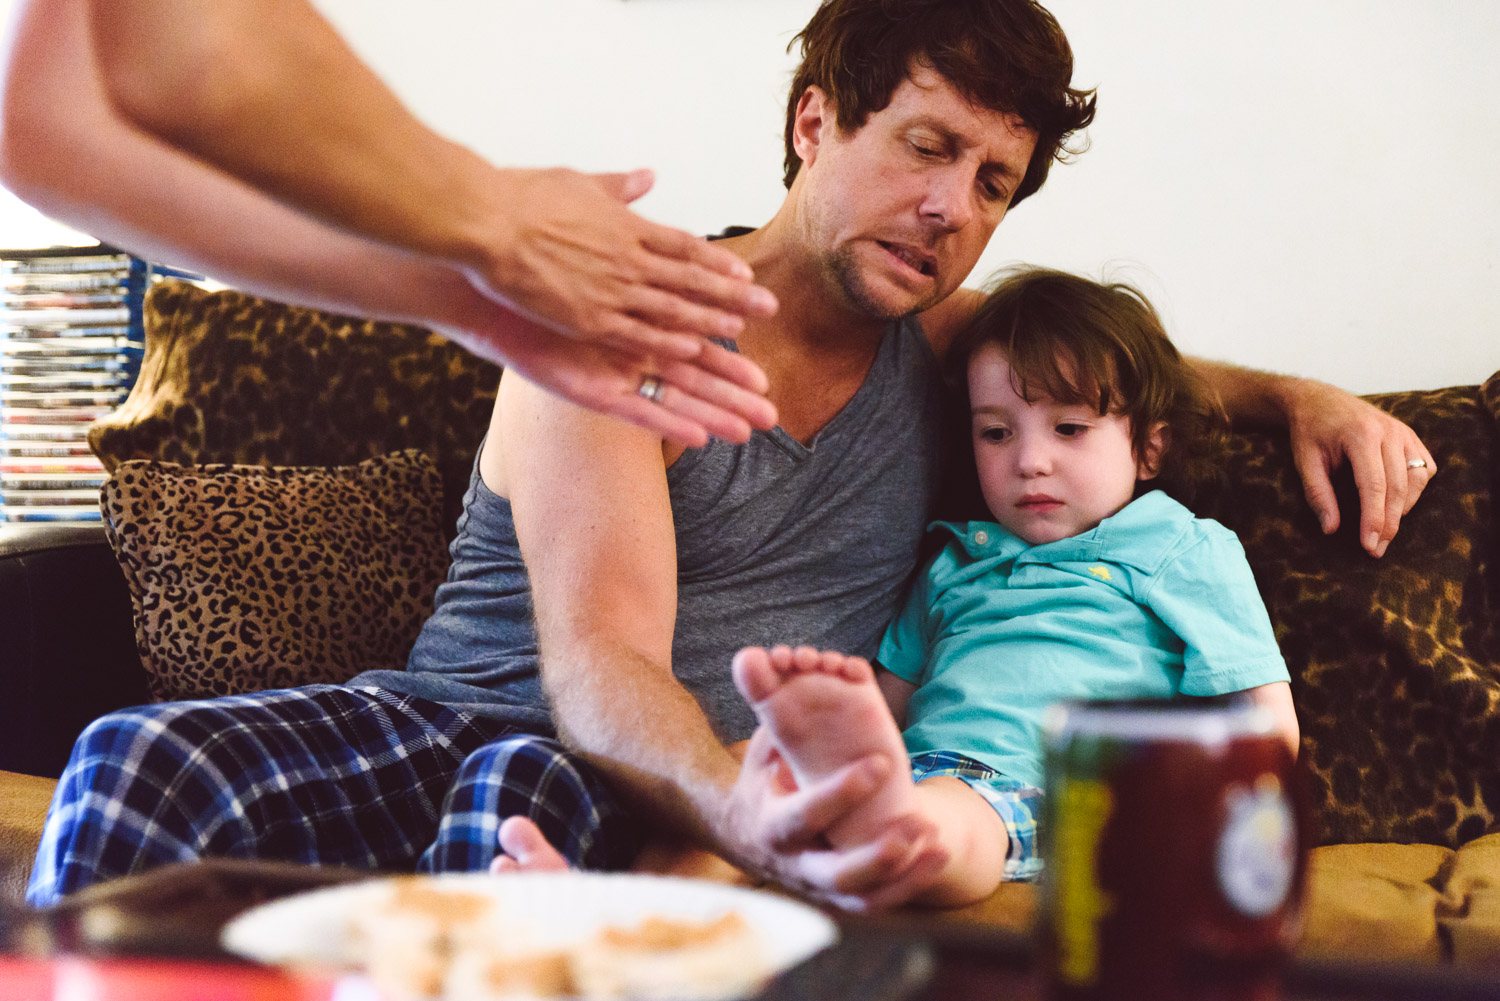 Francesca Russell Photography | Astoria, Queens Family Photographer | Hurt ankle